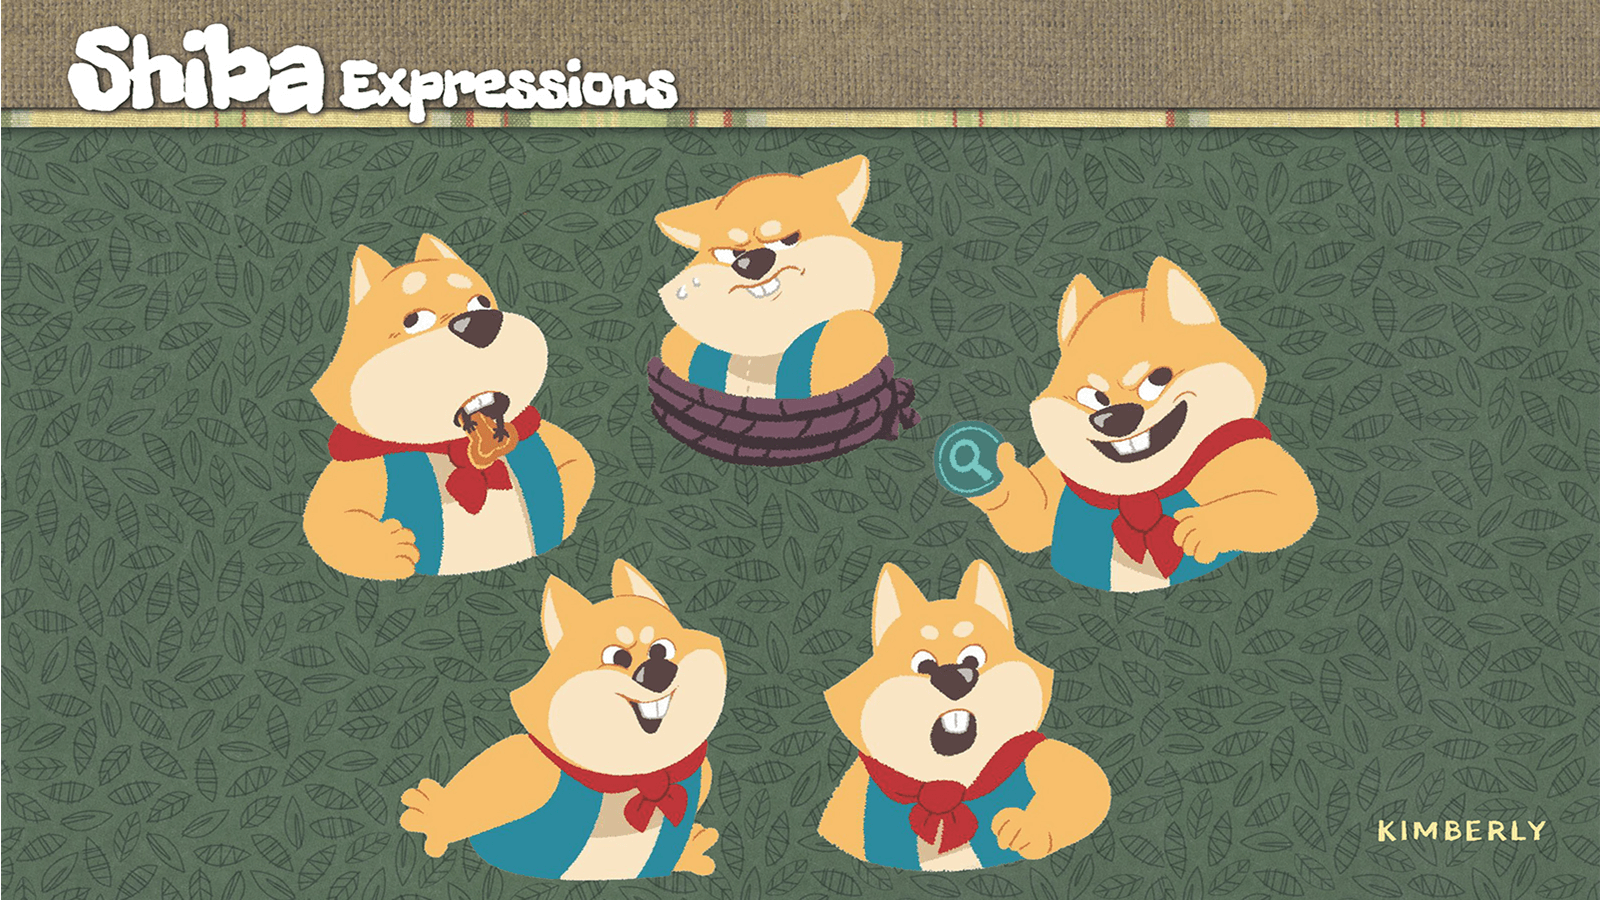 Facial expressions of the character Shiba.